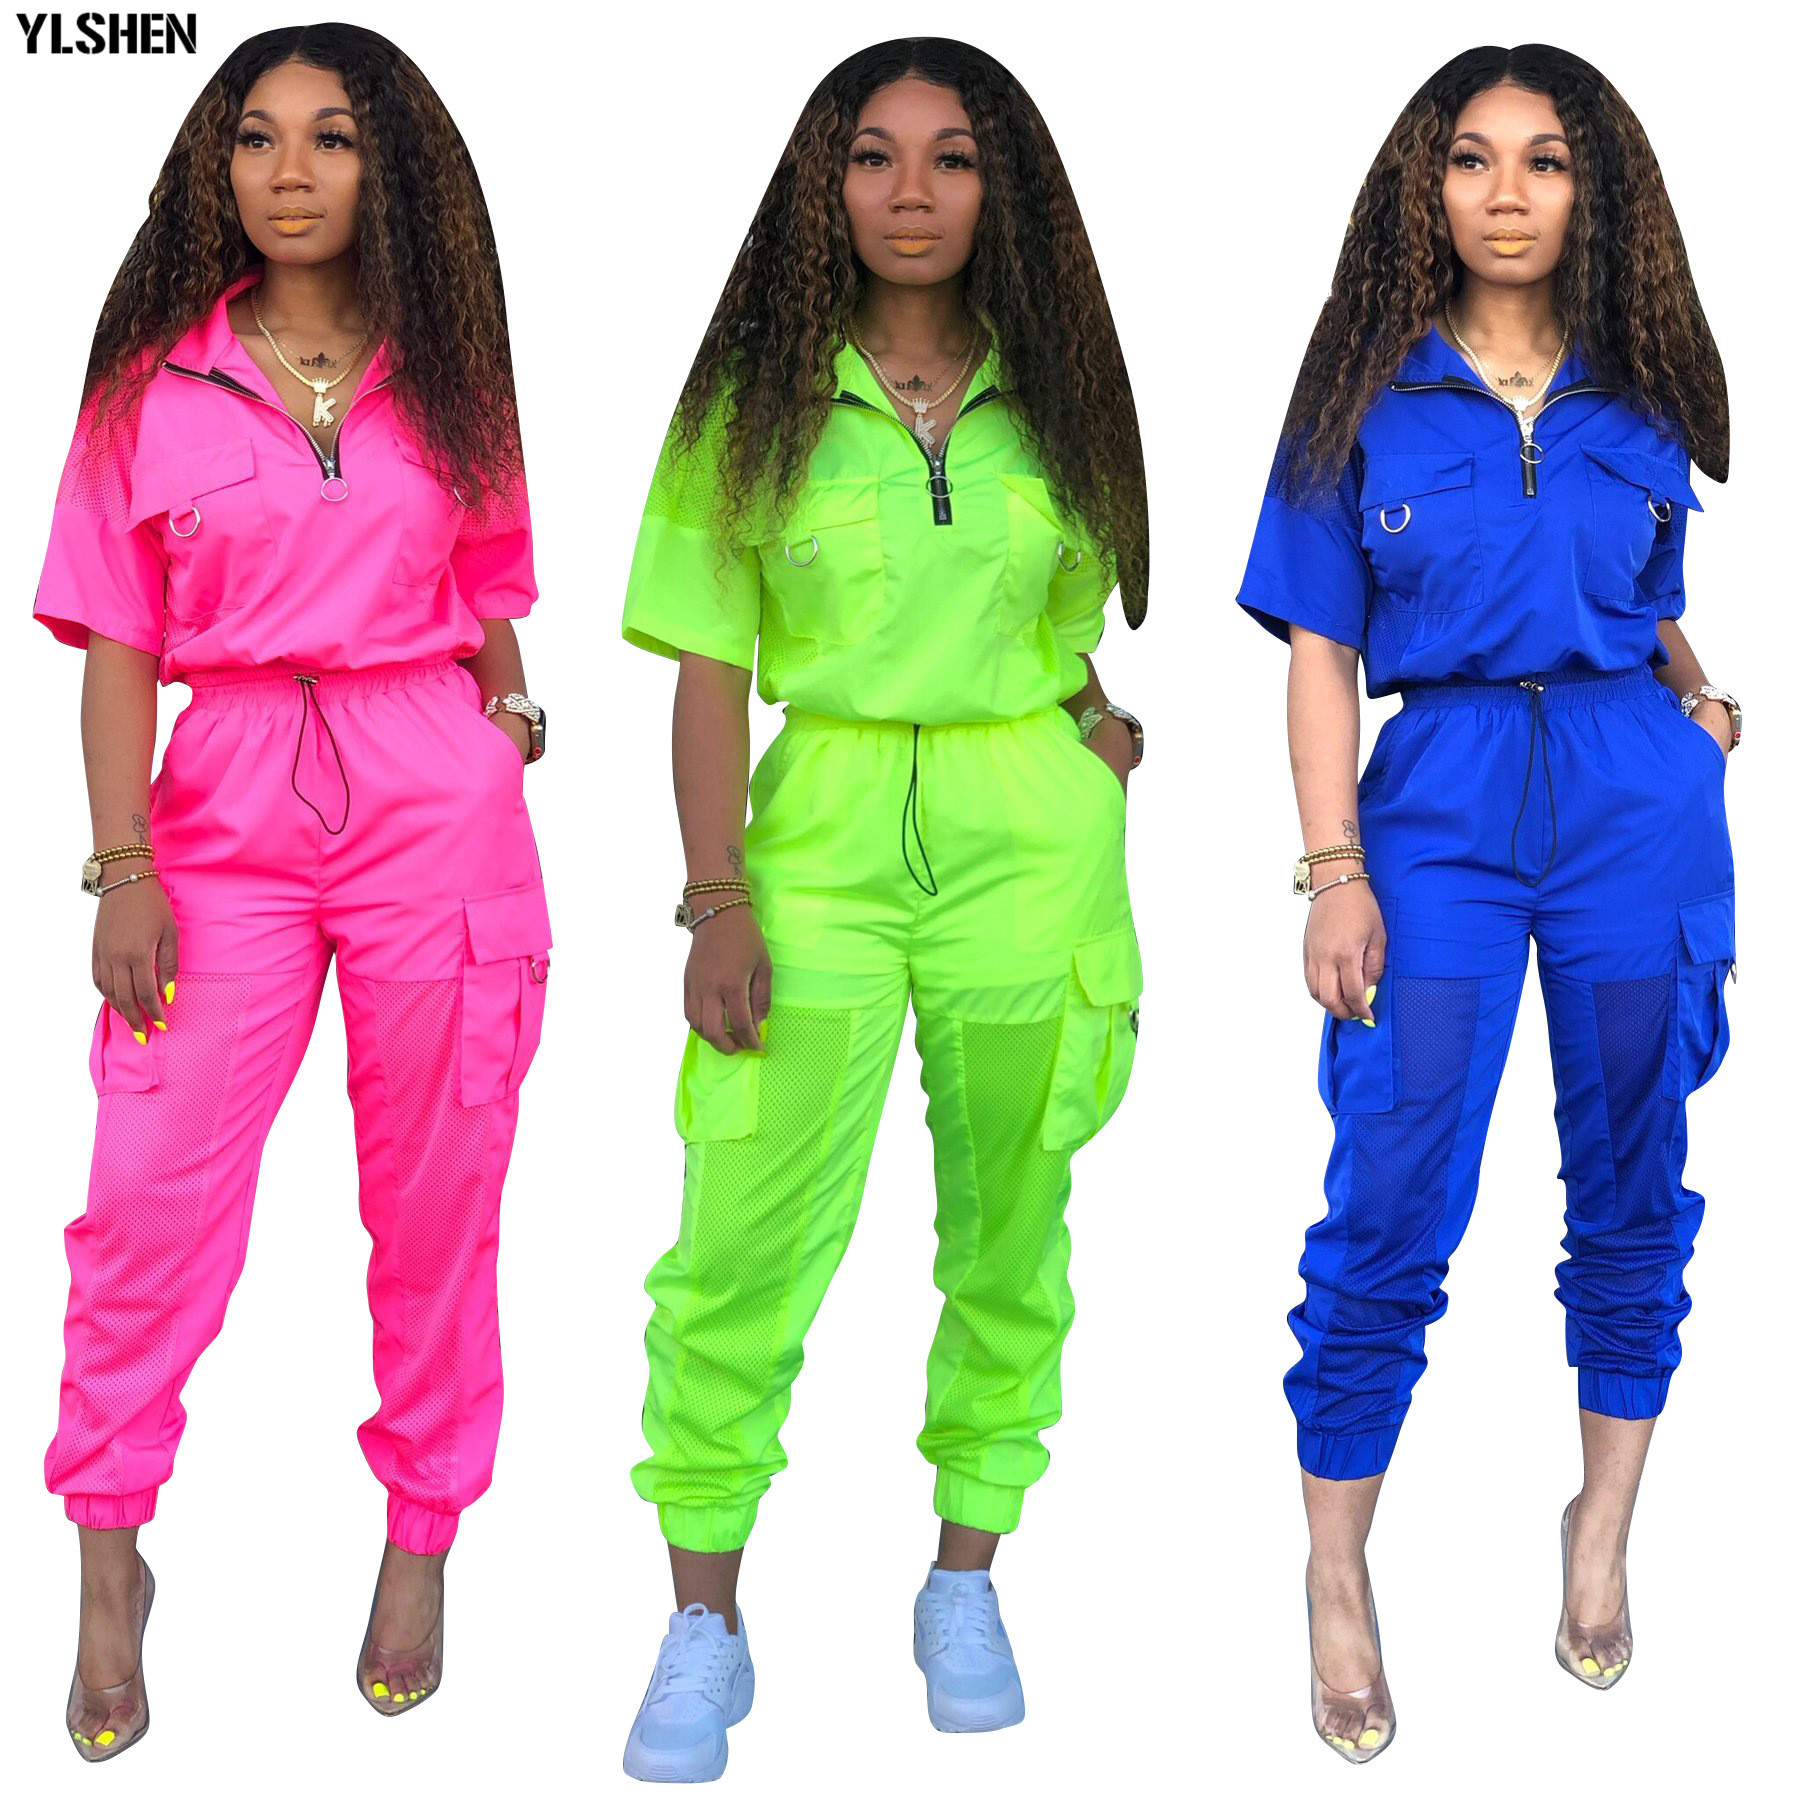 Neon Green 2 Two Piece Set Women Tracksuit Festival Clothes Plus Size Summer Outfits Tops +Pants Sweat Suit Matching Sets 2020